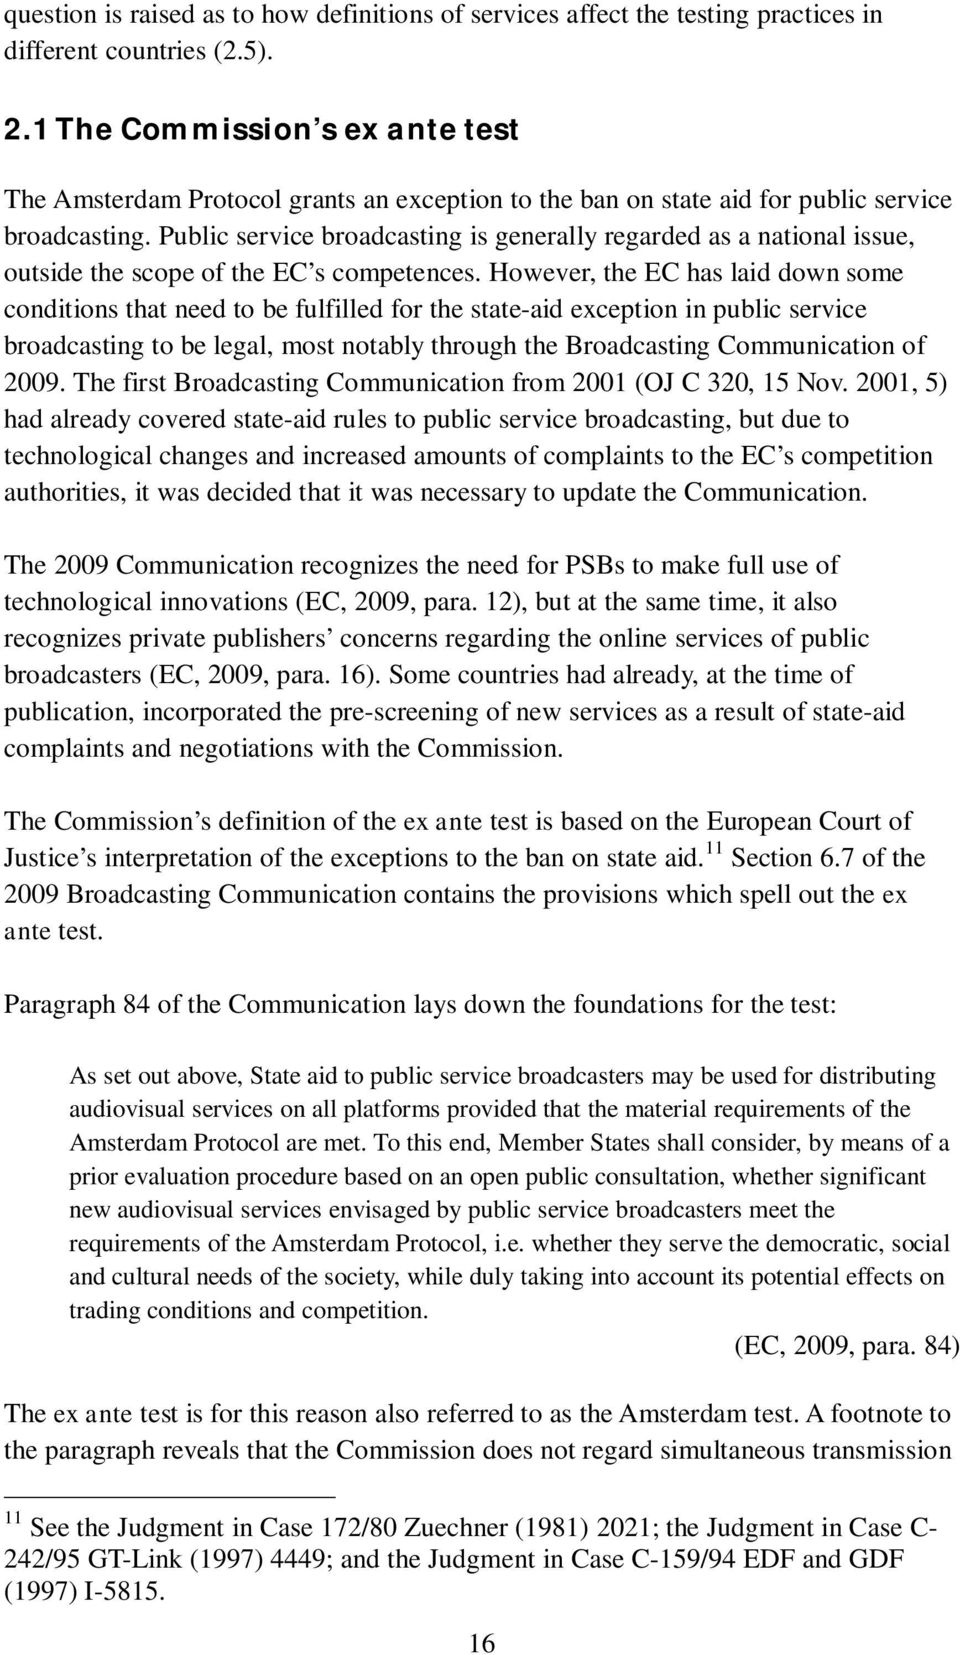 Public service broadcasting is generally regarded as a national issue, outside the scope of the EC s competences.